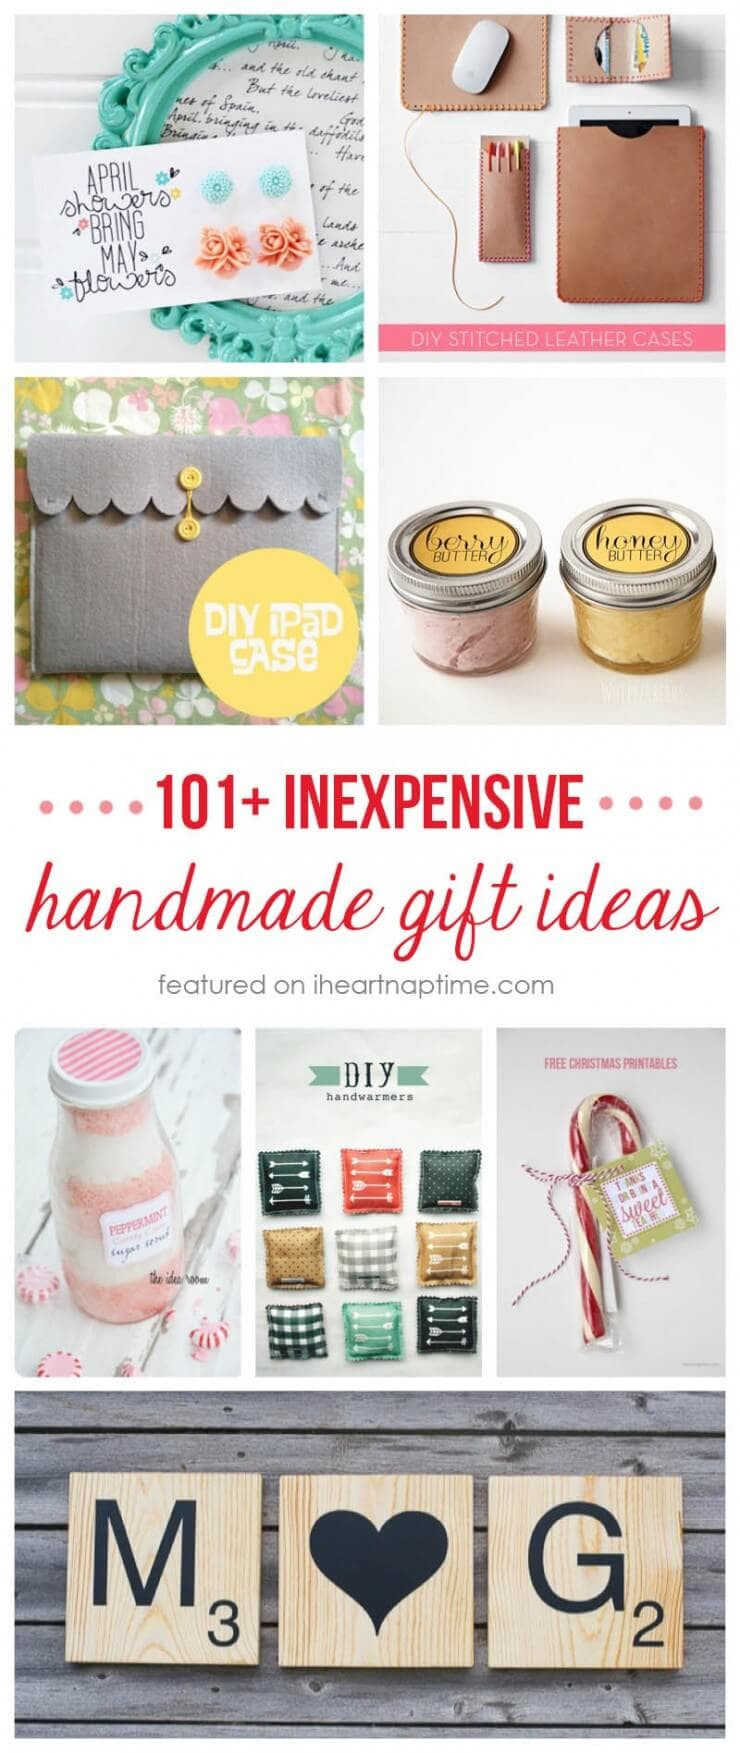 Christmas DIY Gifts  50 homemade t ideas to make for under $5 I Heart Nap Time